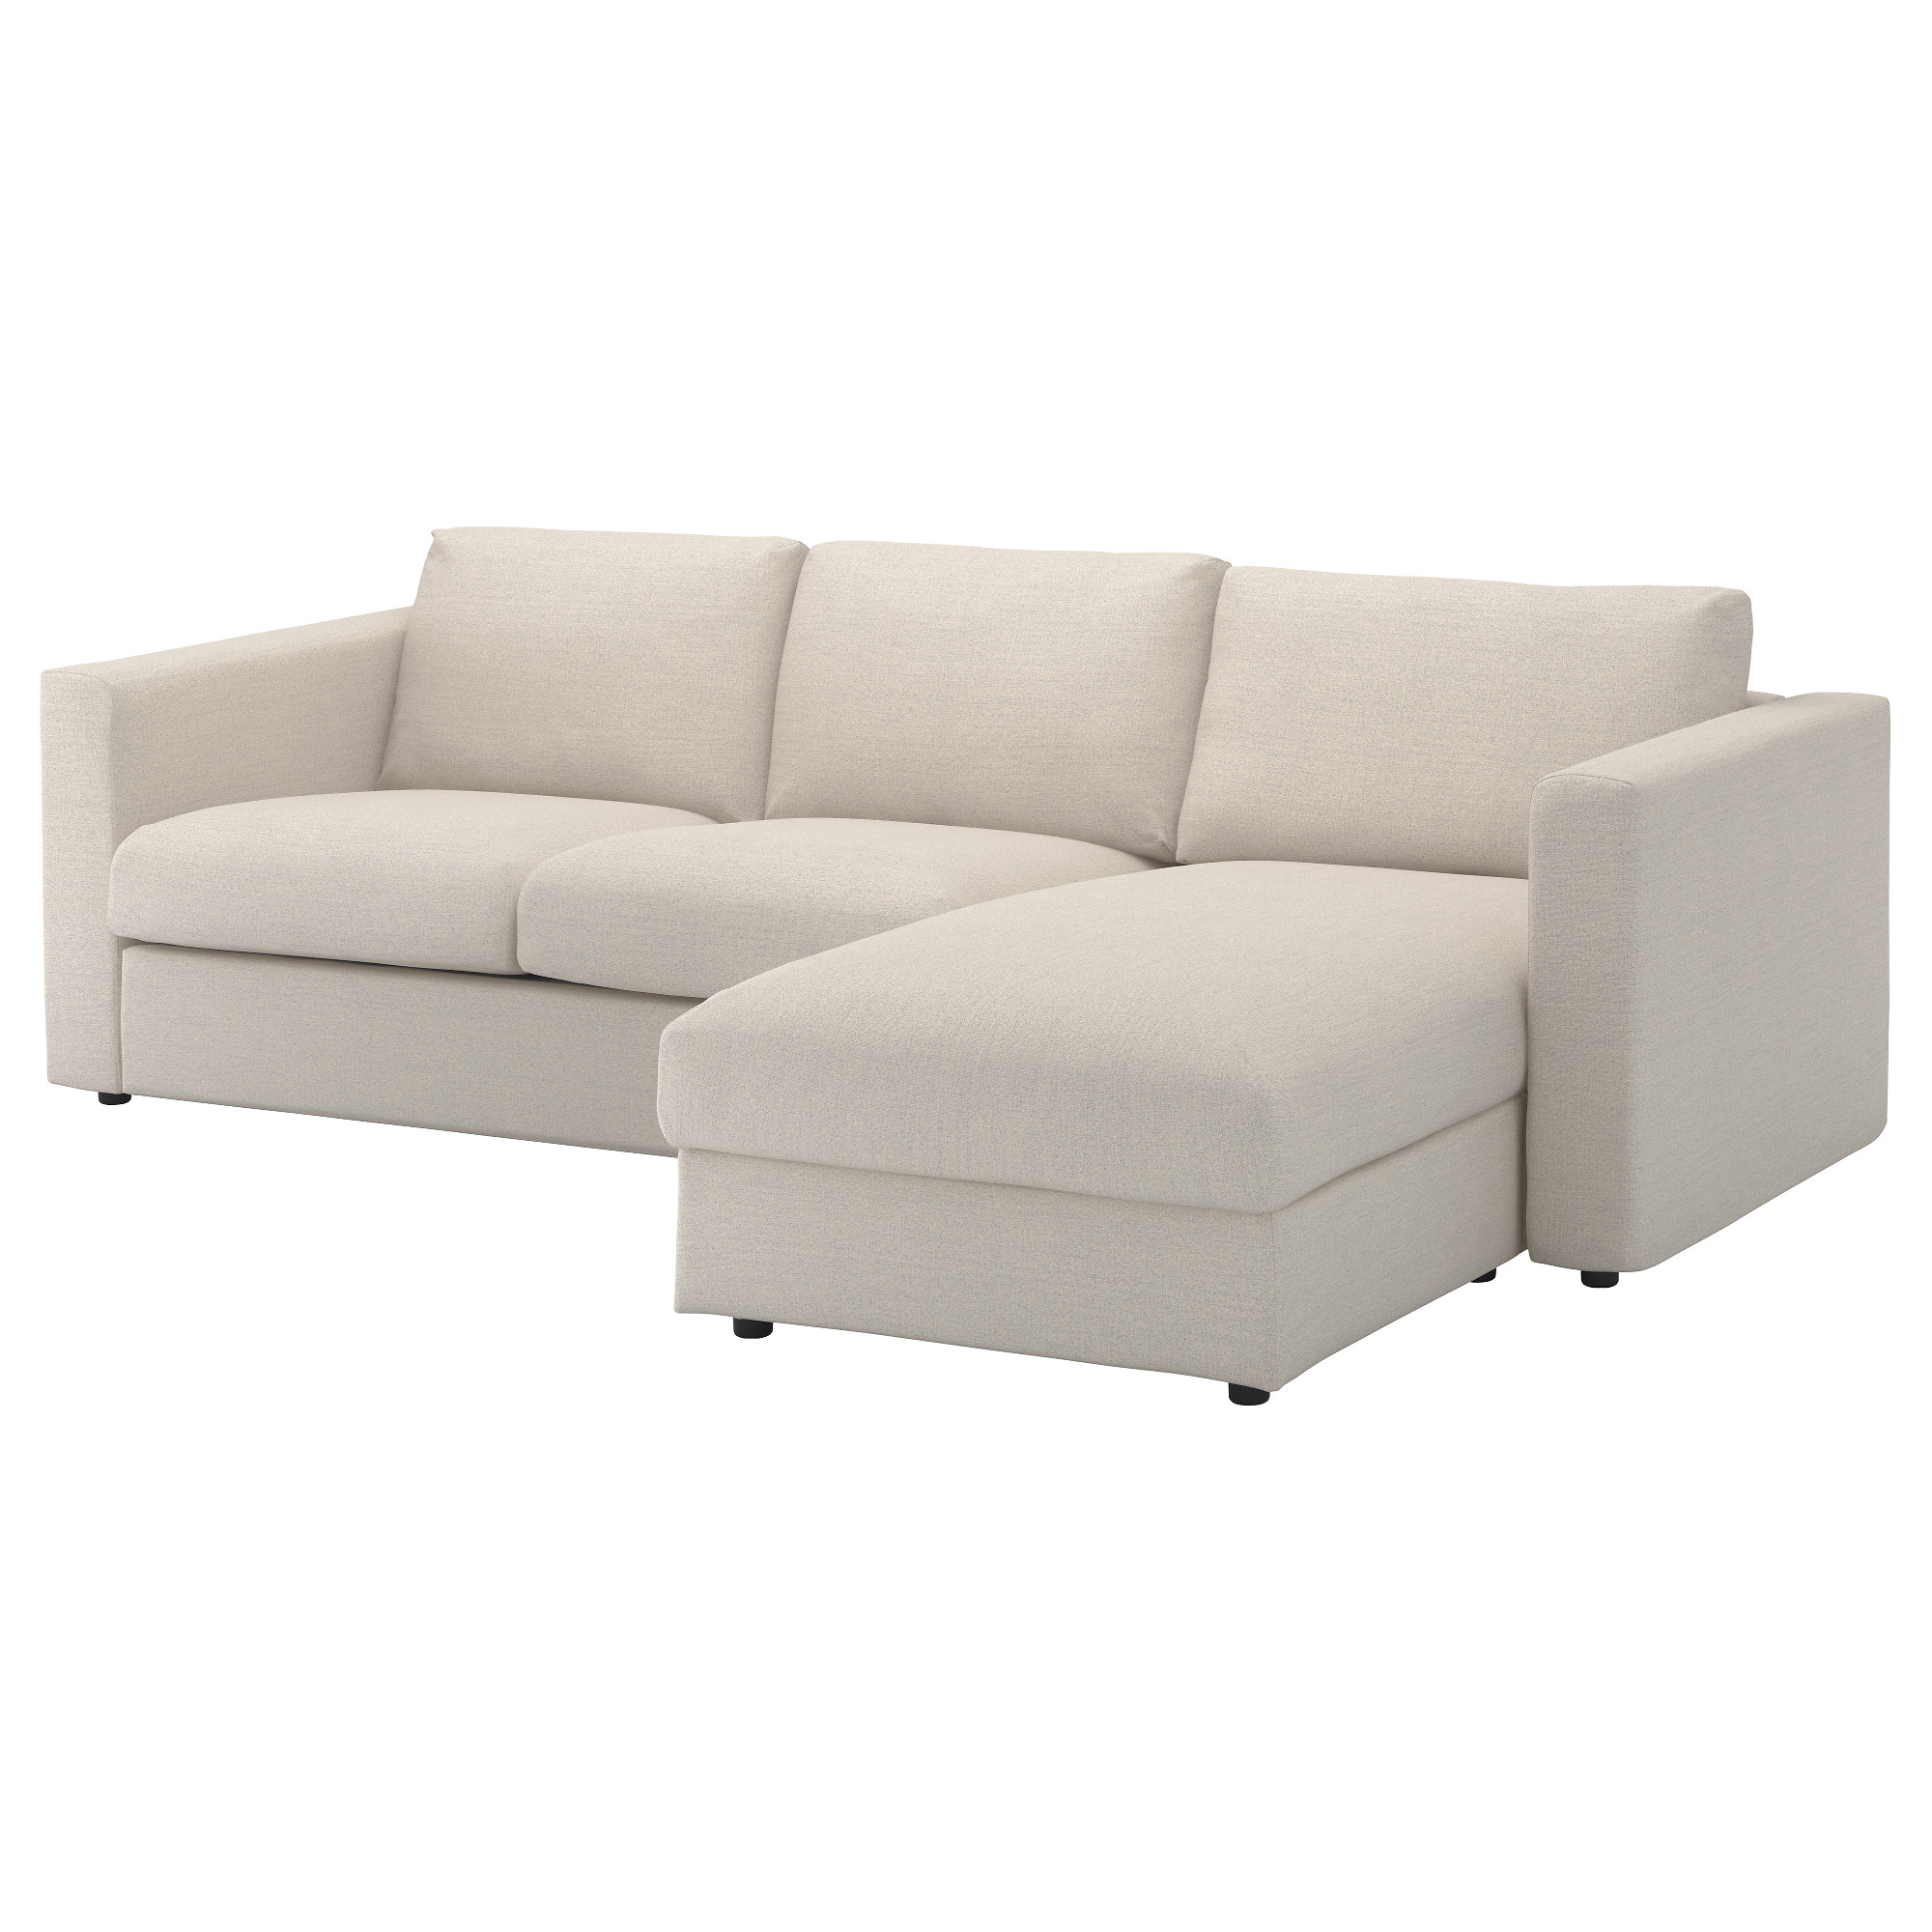 Vimle Sofa Ikea Dubai 3 Seat Sofa Vimle With Chaise Longue Gunnared Beige